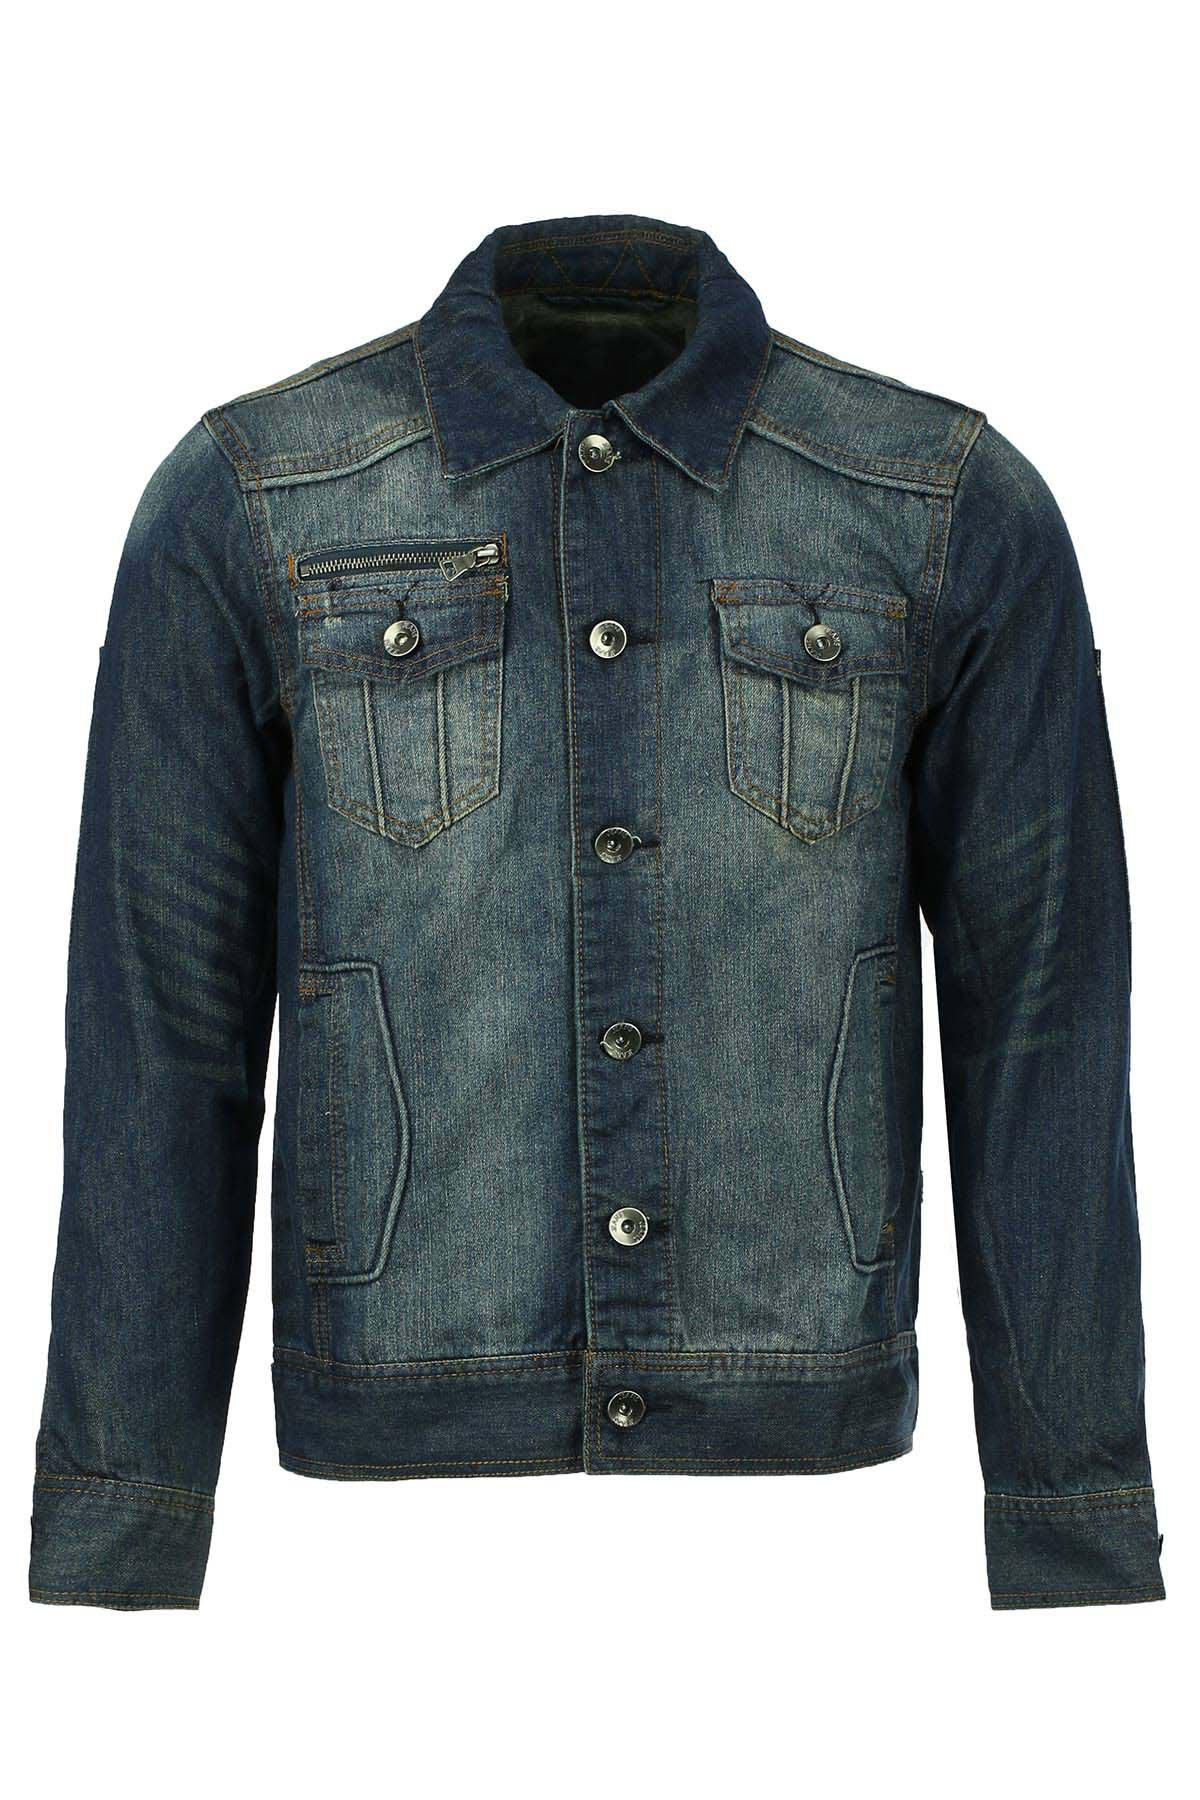 Turn-Down Collar Bleach Wash Flap Patch Pocket Long Sleeve Men's Denim Jacket - BLUE 2XL